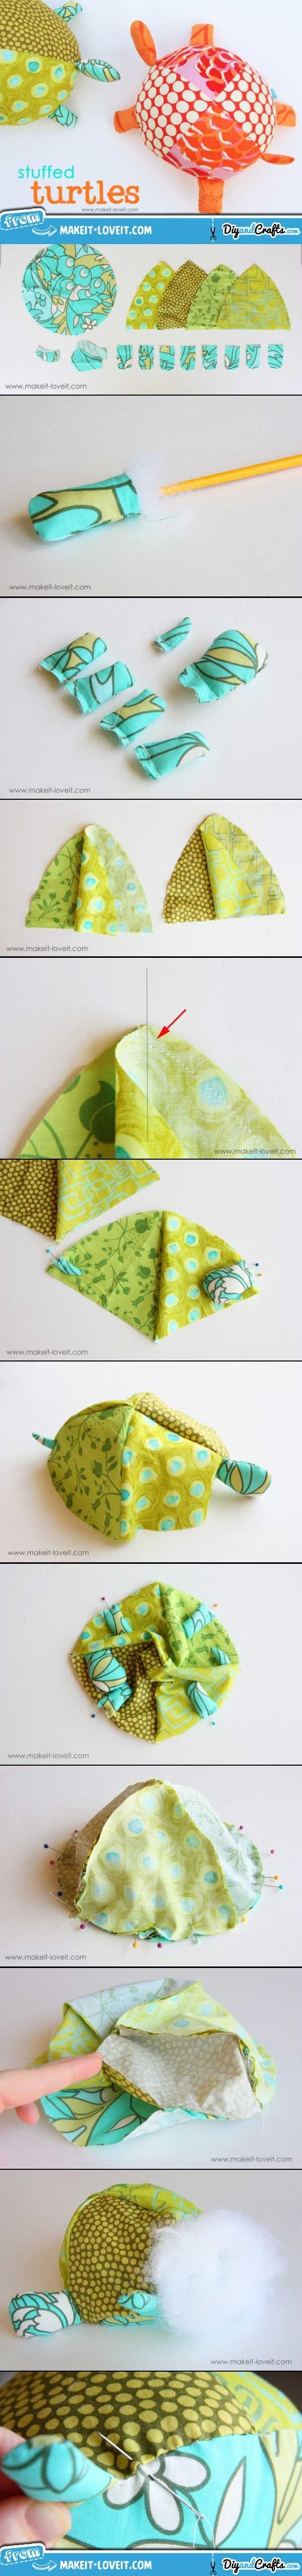 Stuffed Fabric Turtles (with pattern pieces)   #DIY and #crafts